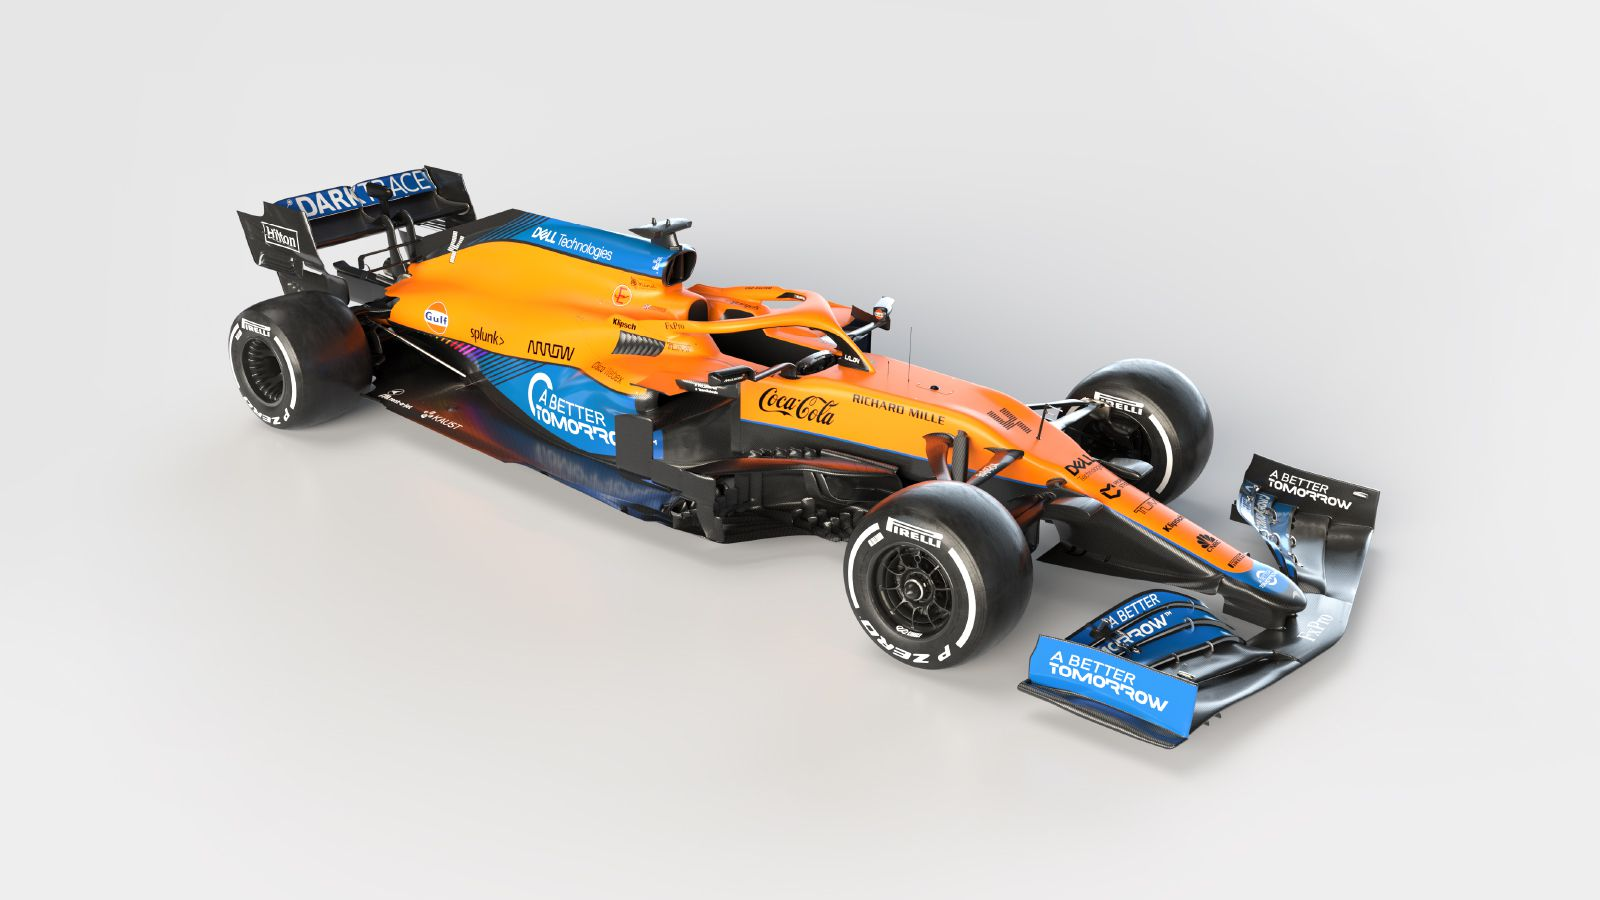 MCL35M_launch_Website_Gallery_Image_1600x620_72_3 (1) .jpg